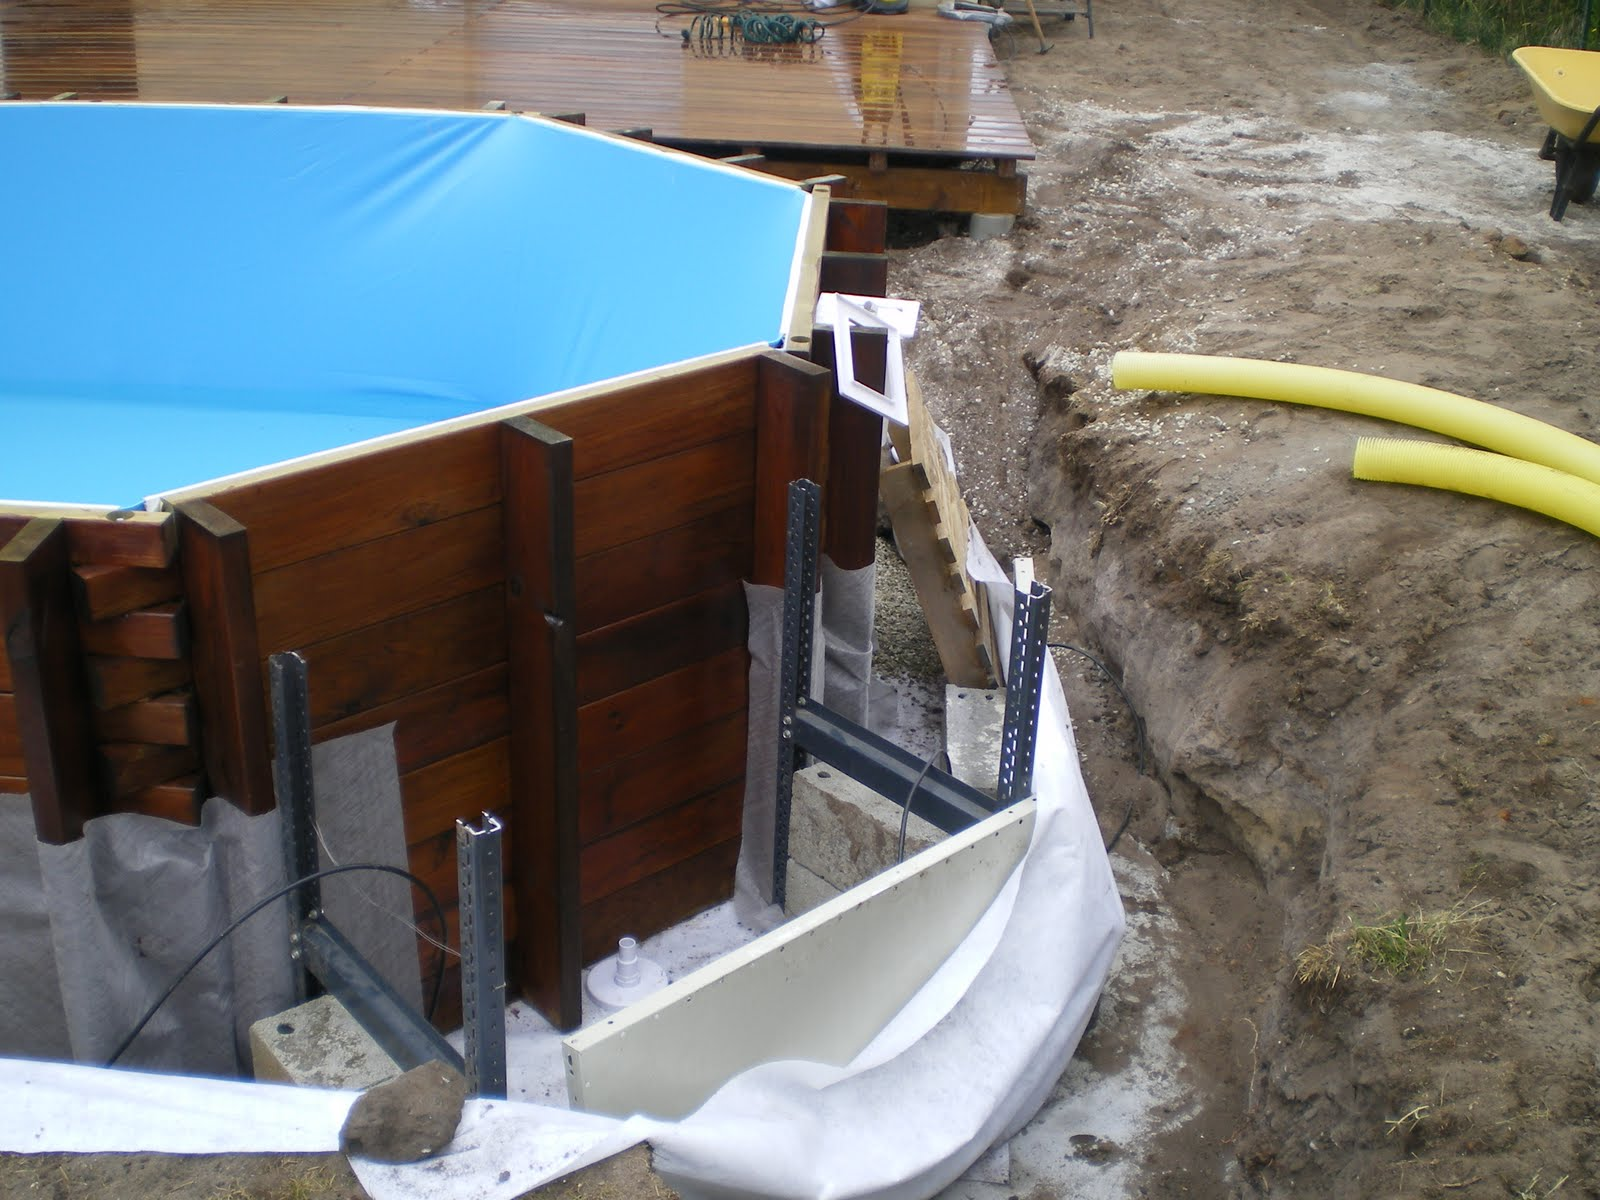 Piscine en kit bois phase 5 mise en eau et pose du drainant for Piscine coque pose comprise